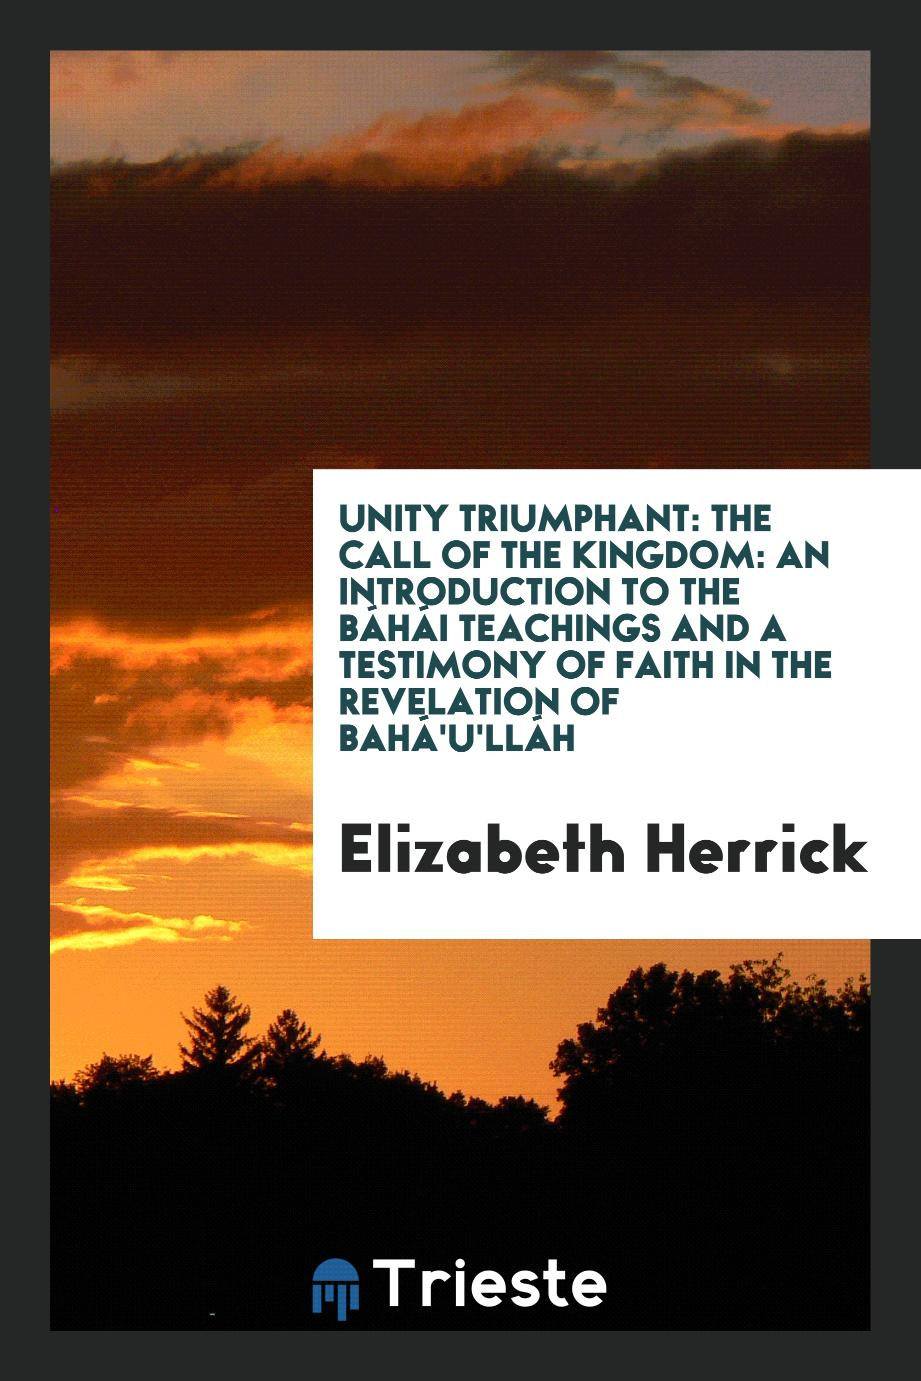 Unity triumphant: the call of the kingdom: an introduction to the Báhái teachings and a testimony of faith in the revelation of Bahá'u'lláh